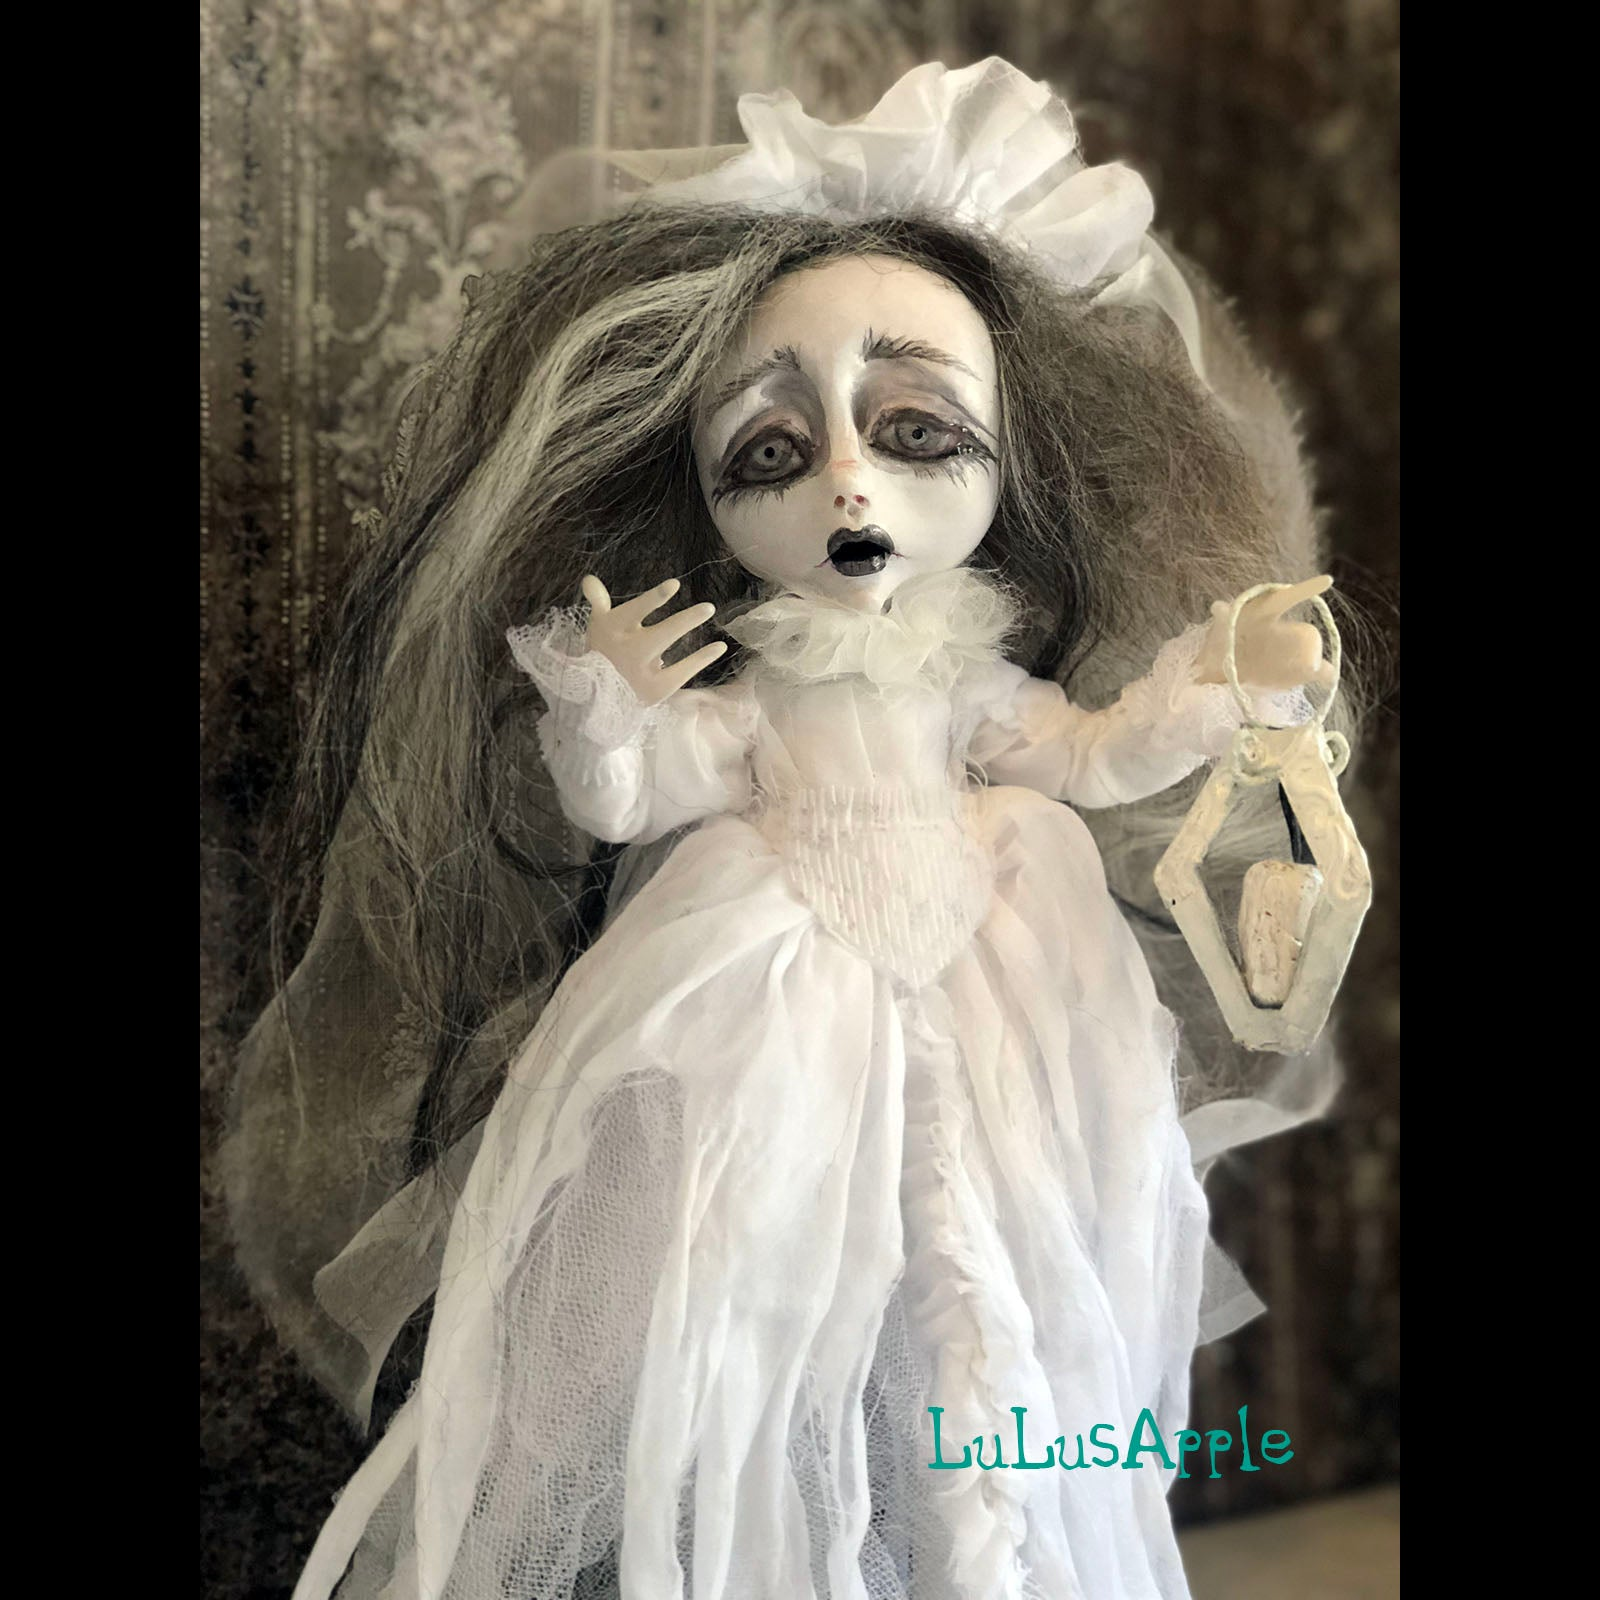 Kasten Purgatory Ghostly Spirit Gothic Victorian LuLusApple Art Doll